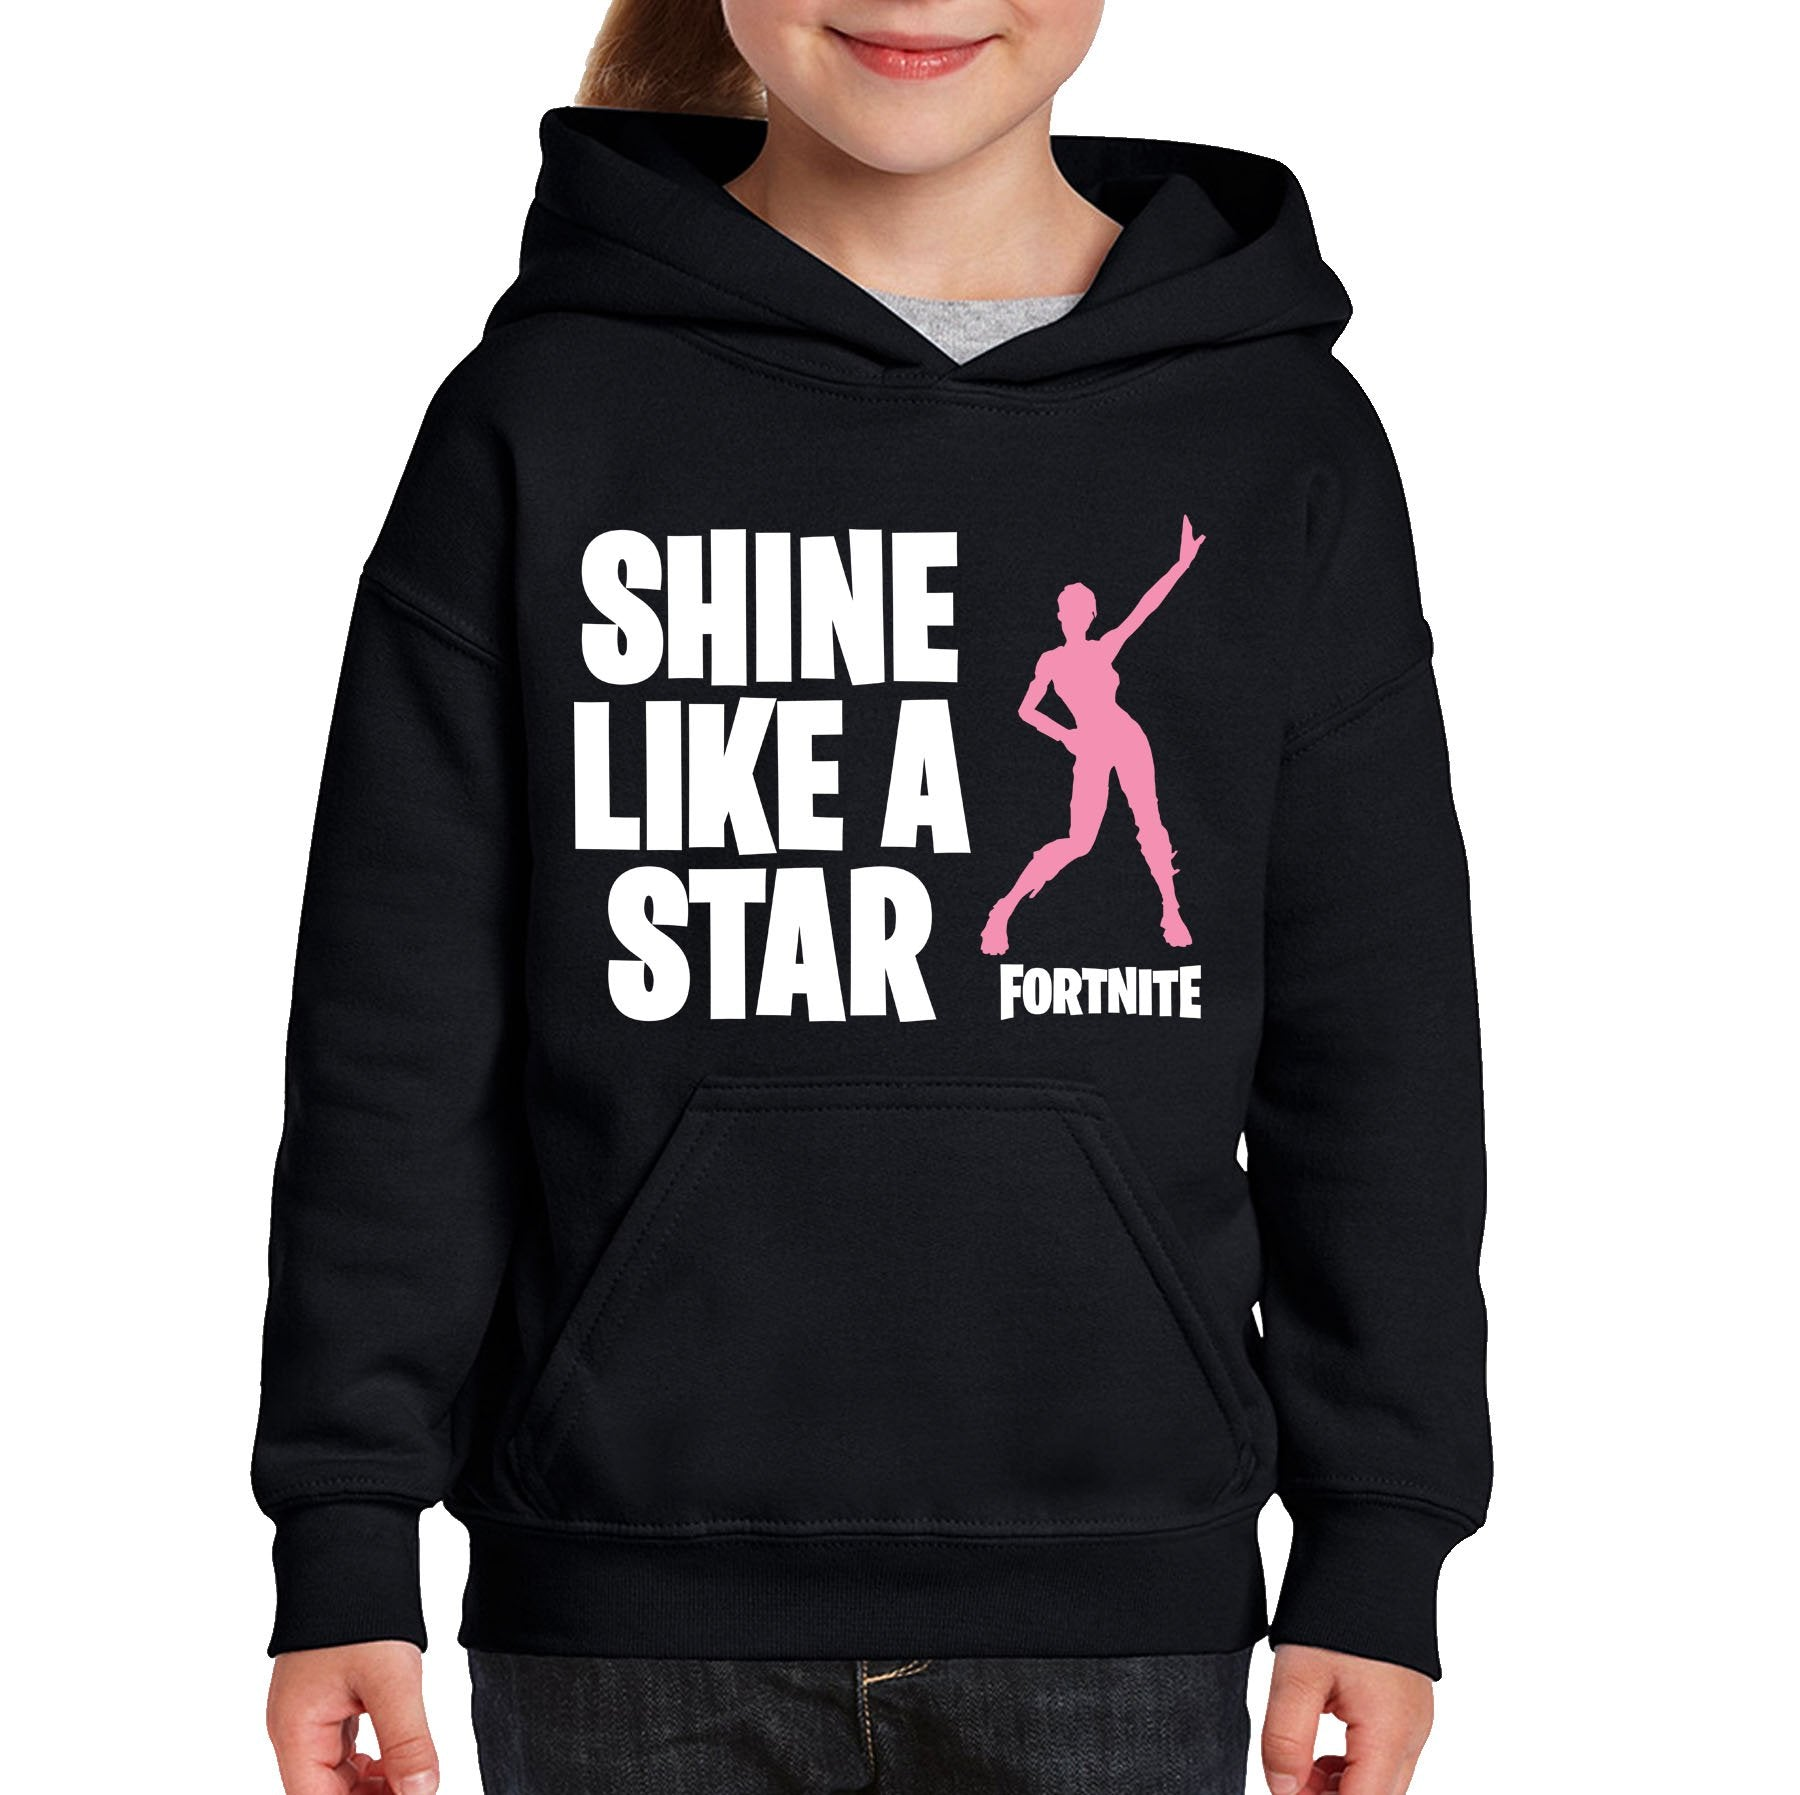 Fortnite Kids Hoodie - Shine Like a Star